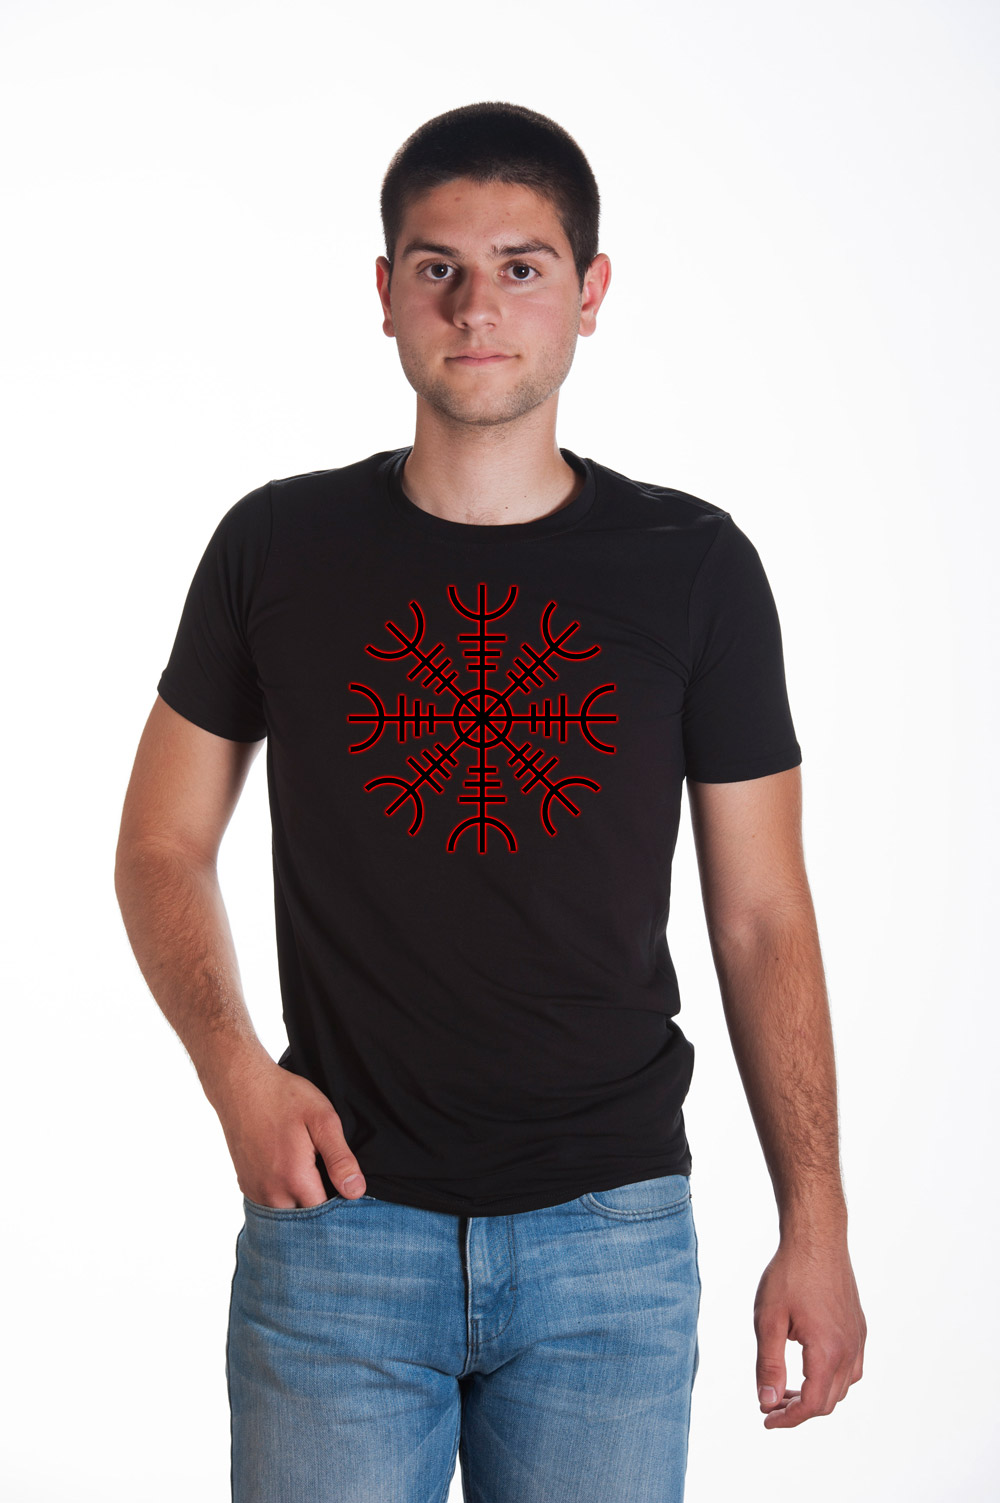 Runic Shield T shirt | Norse Mythology Tee | Runes Tshirt | Norse Shirt